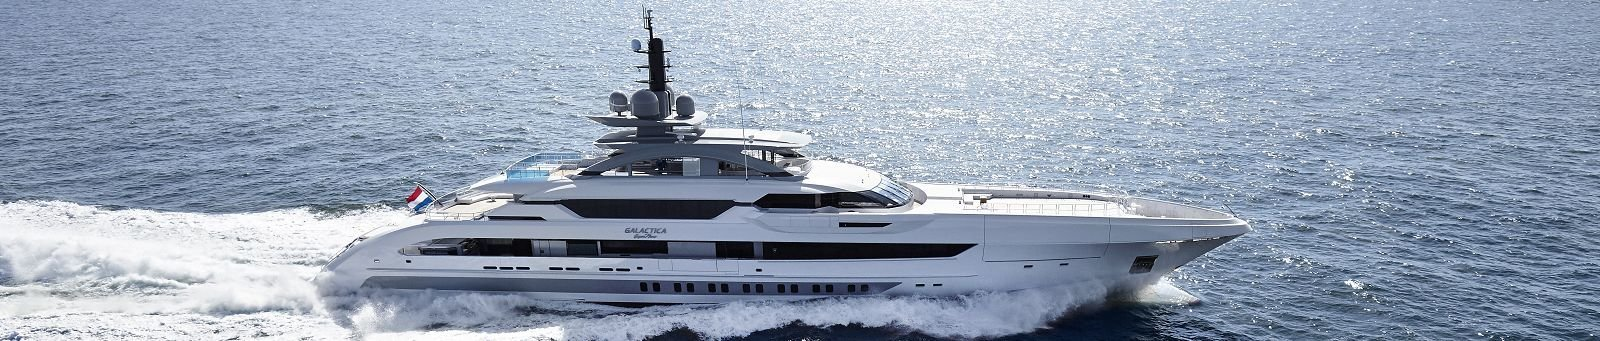 New Case Report: Heesen Galactica Super Nova